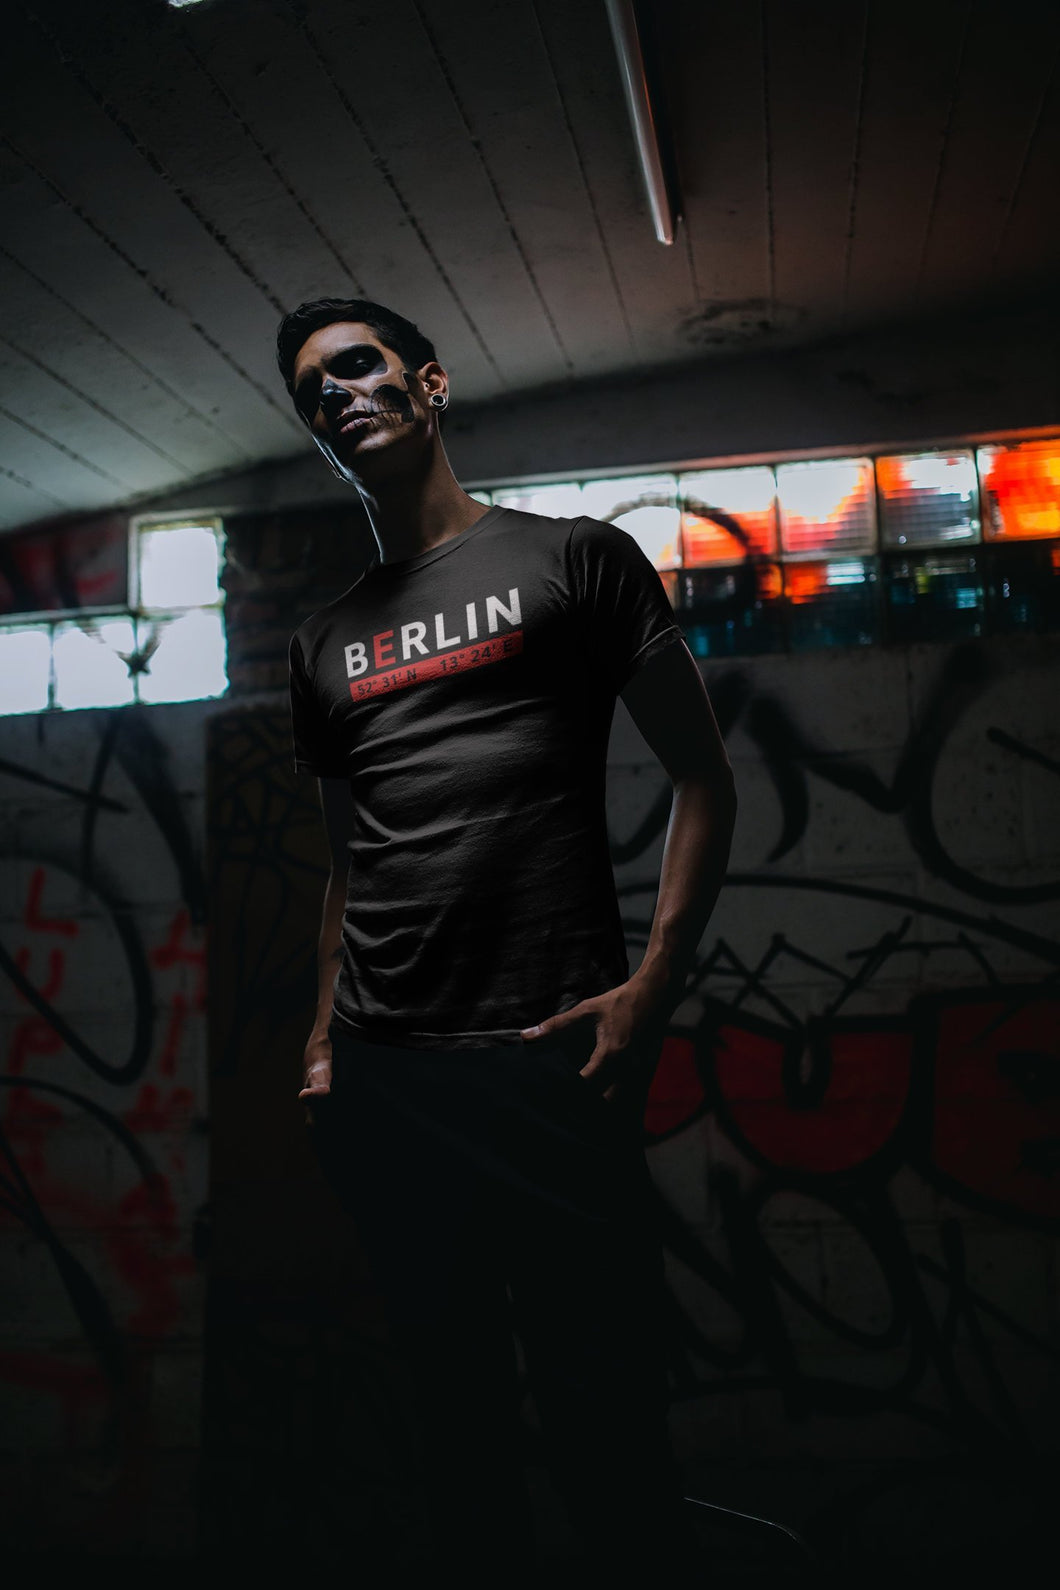 Berlin Tshirt - Rise up!